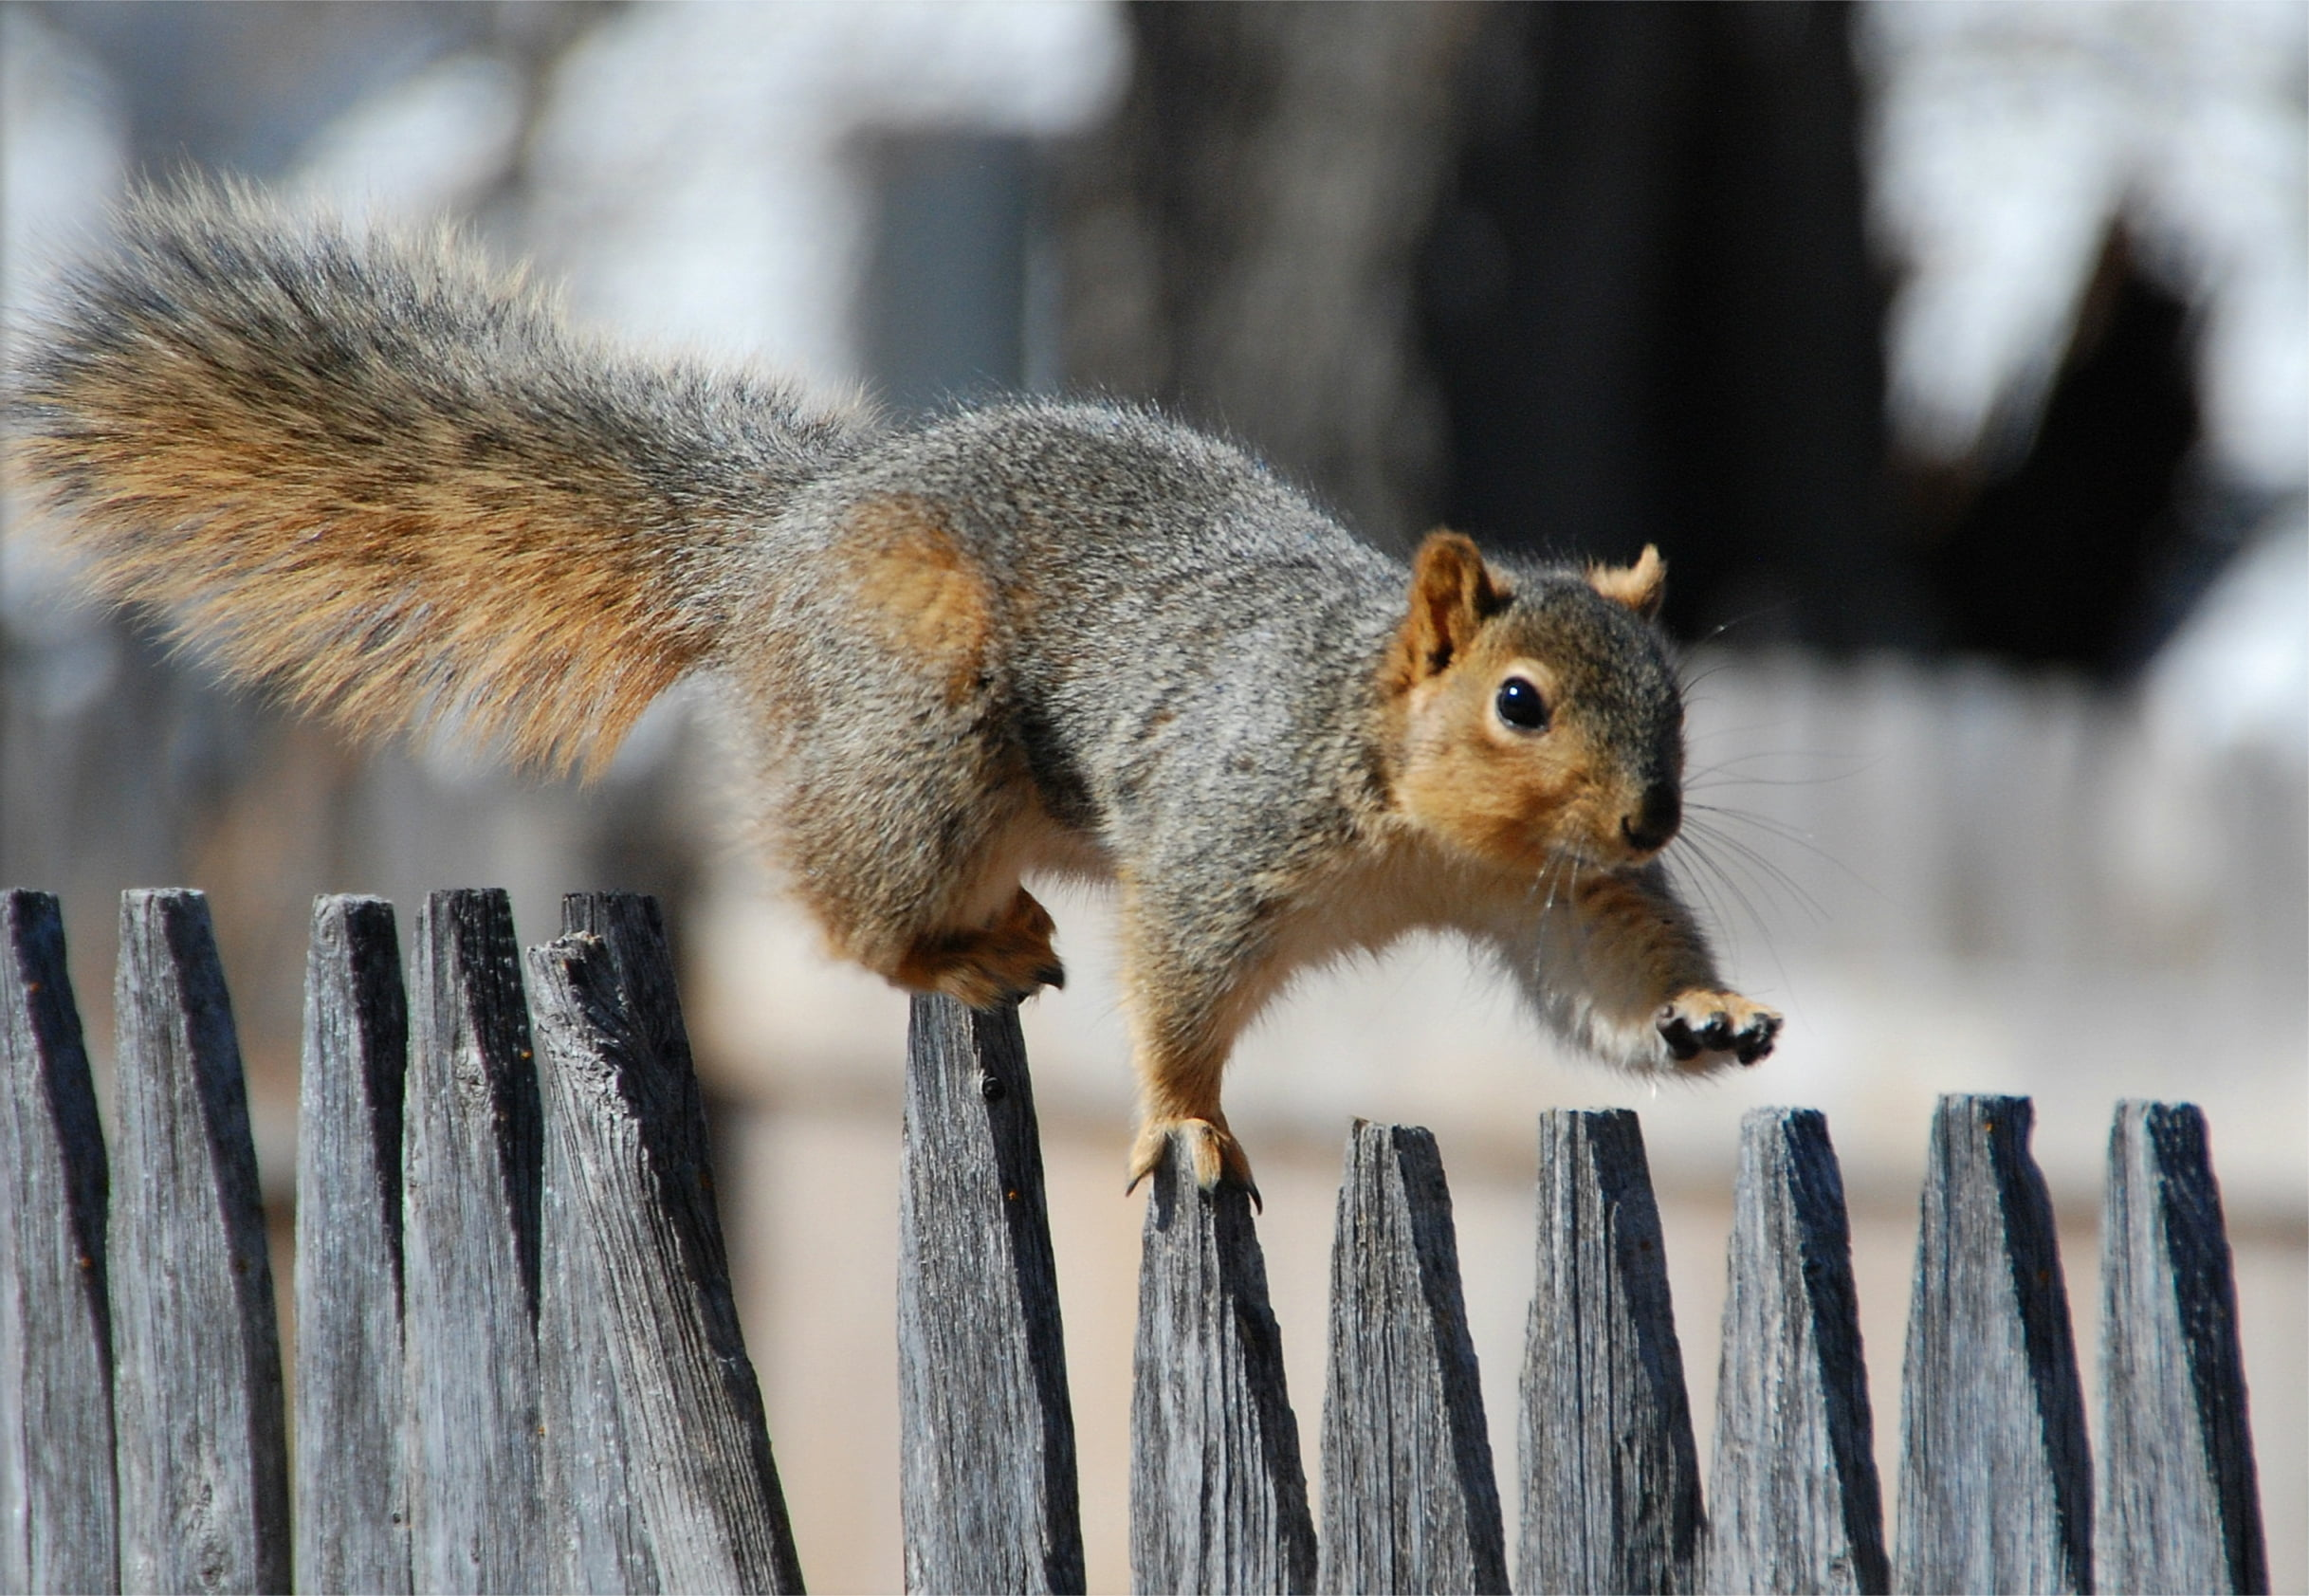 Squirrel on fence photo